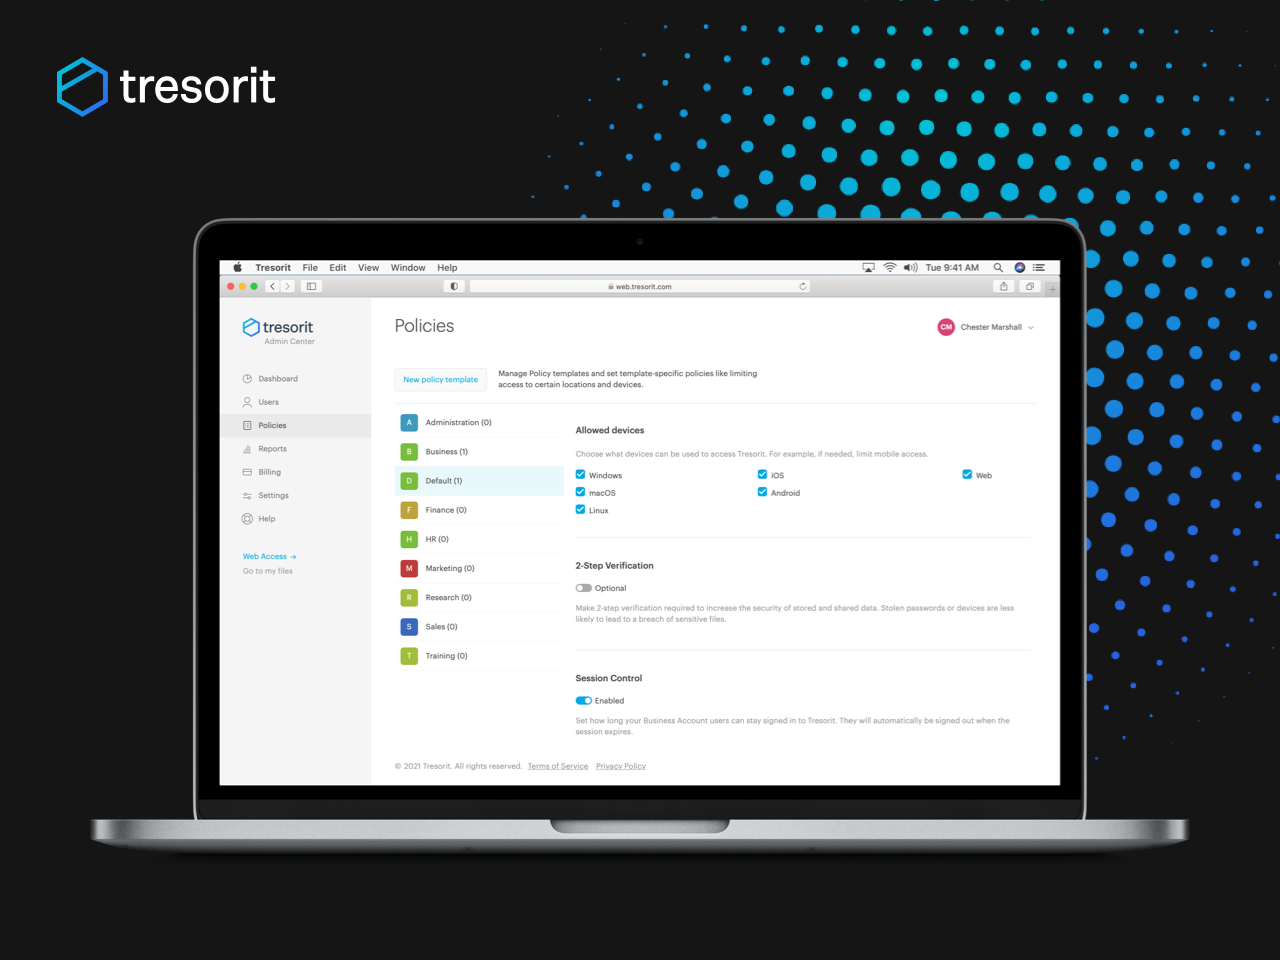 Tresorit Content Shield Security Policies